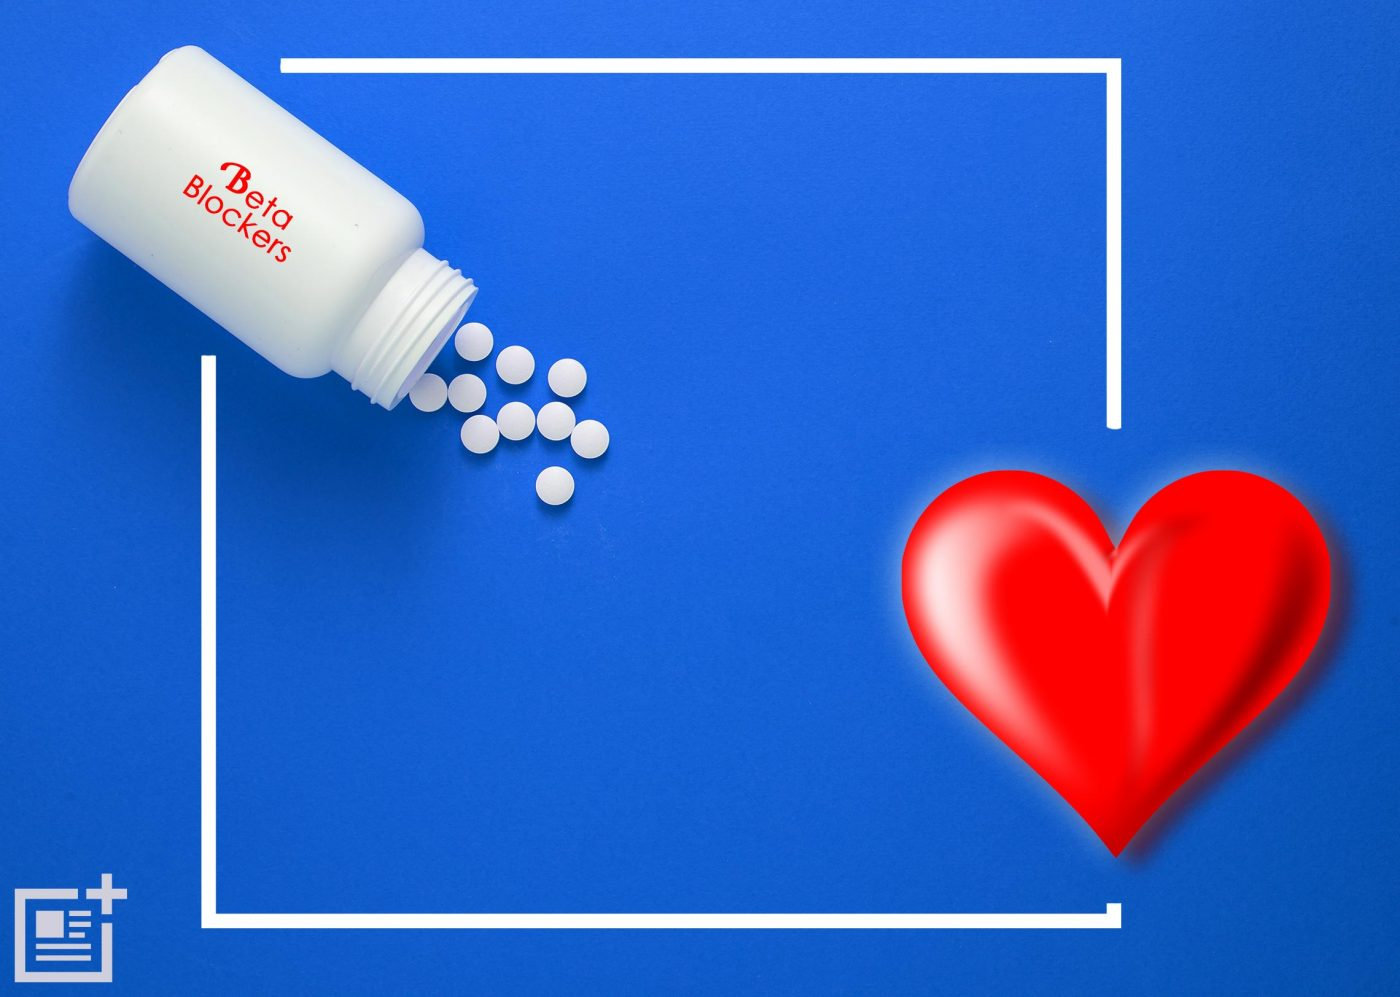 early use of beta blockers can save life after heart attack